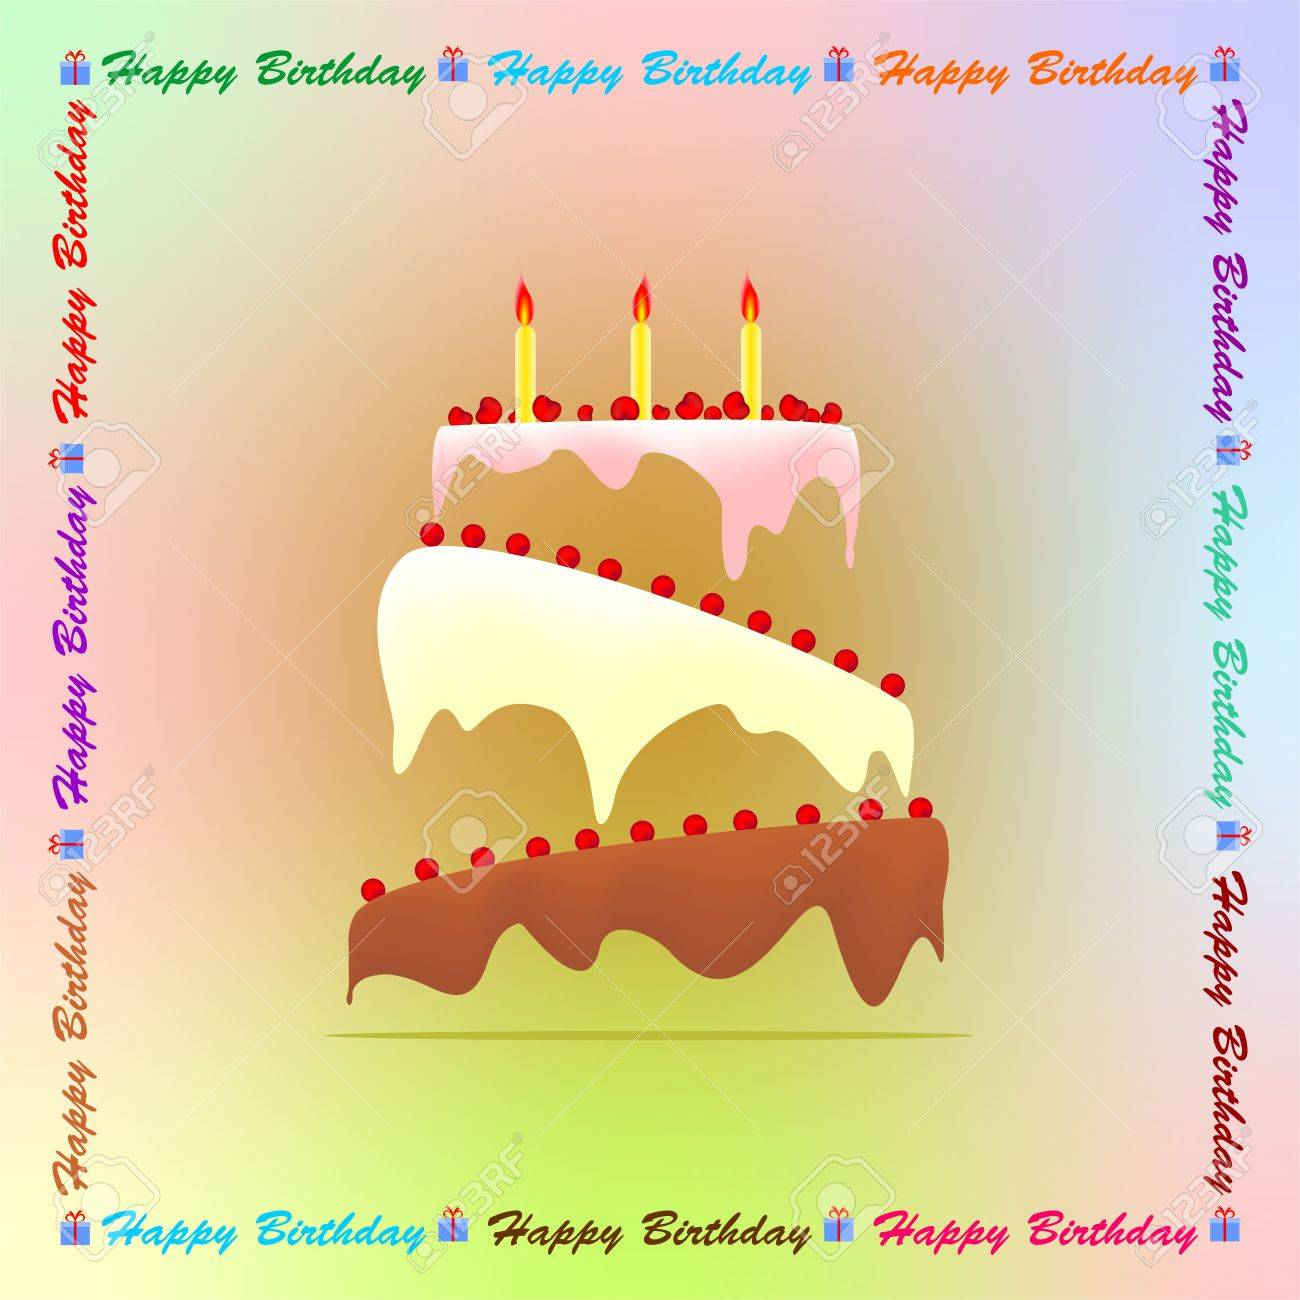 Colored Birthday Greeting With A Birthday Cake With Colored Frosting